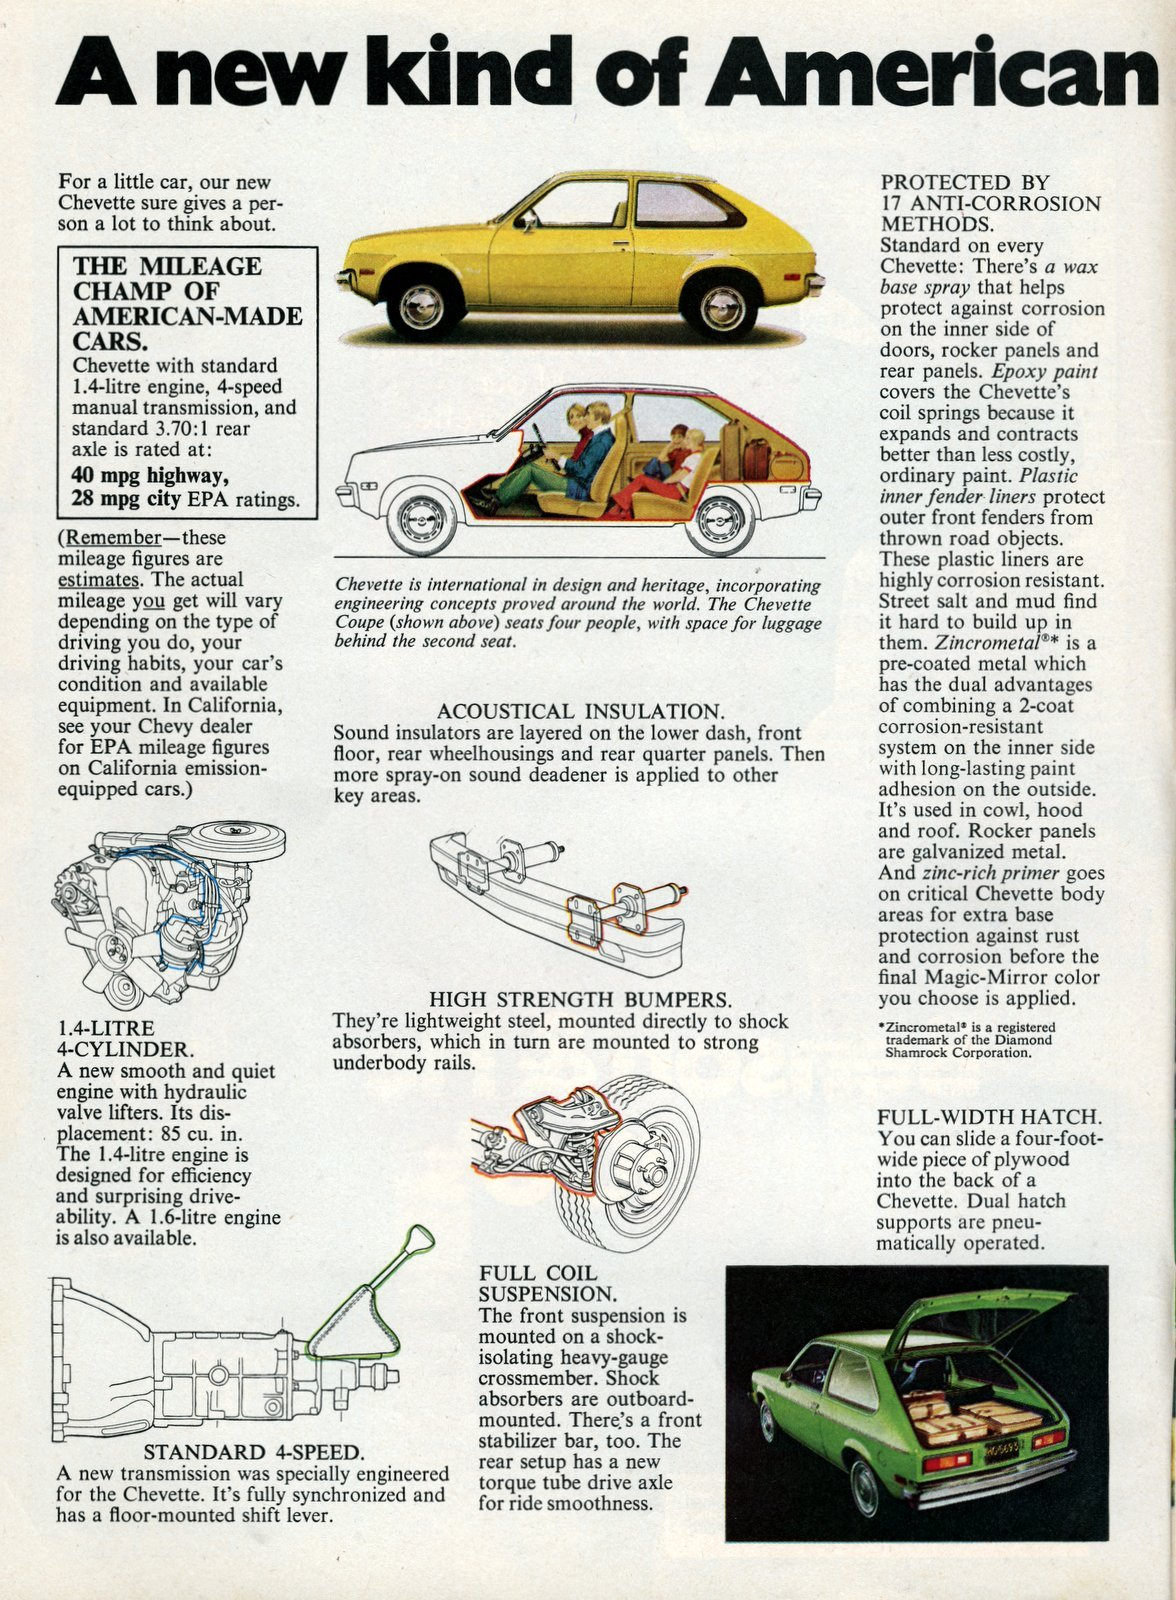 Chevy Chevette - A new kind of American car worth looking into - January 1976 (2)